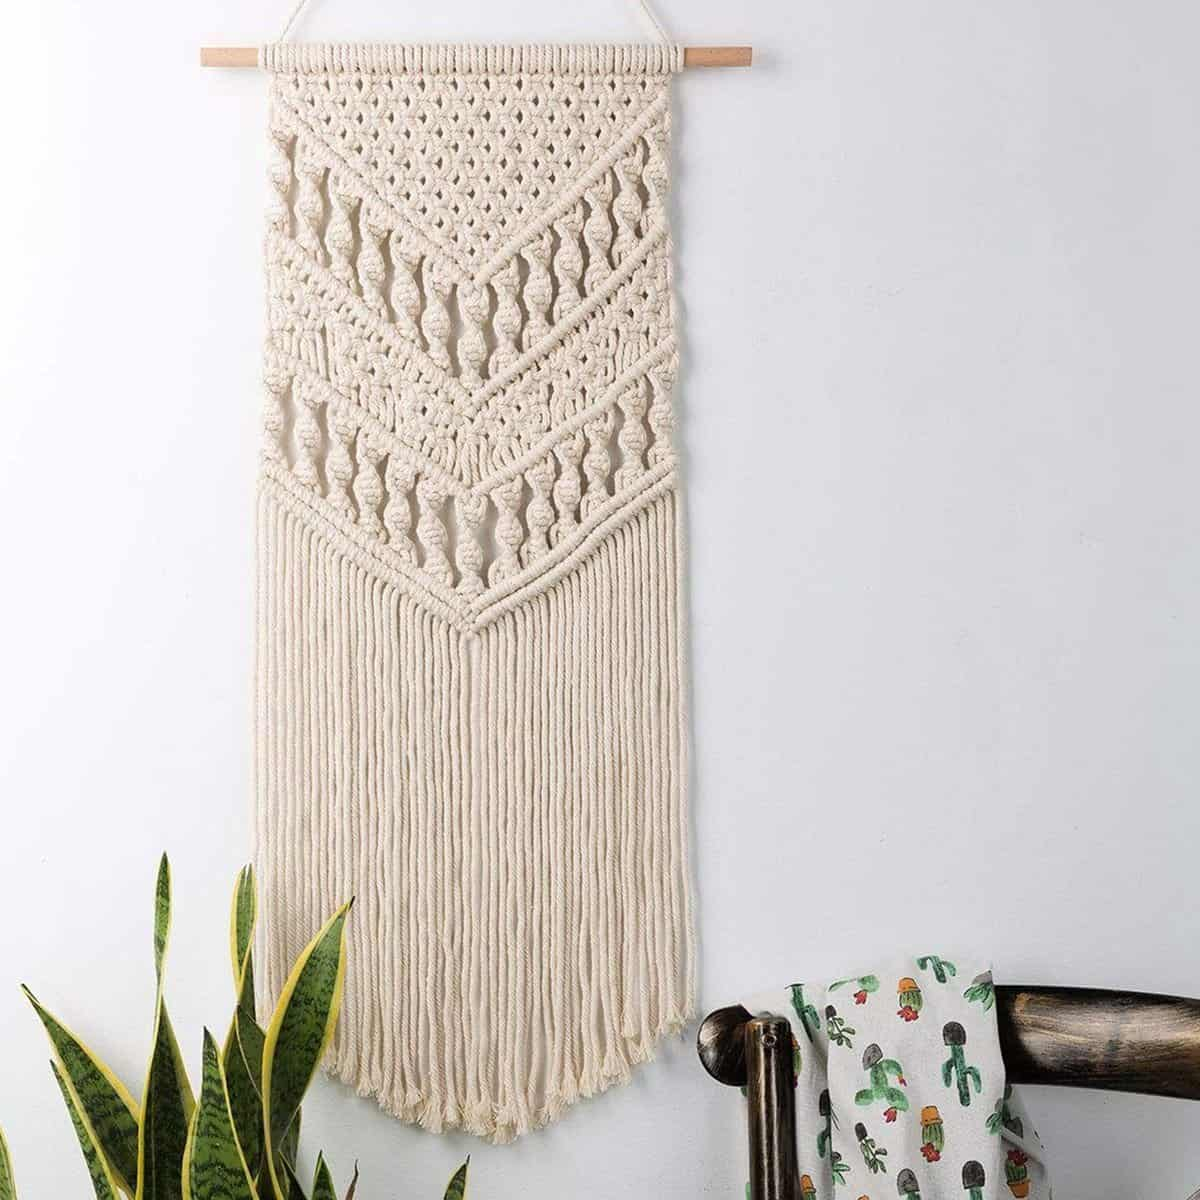 Boho Chic by Ingrid Tapestry/Macrame unique and elegant Tapestry